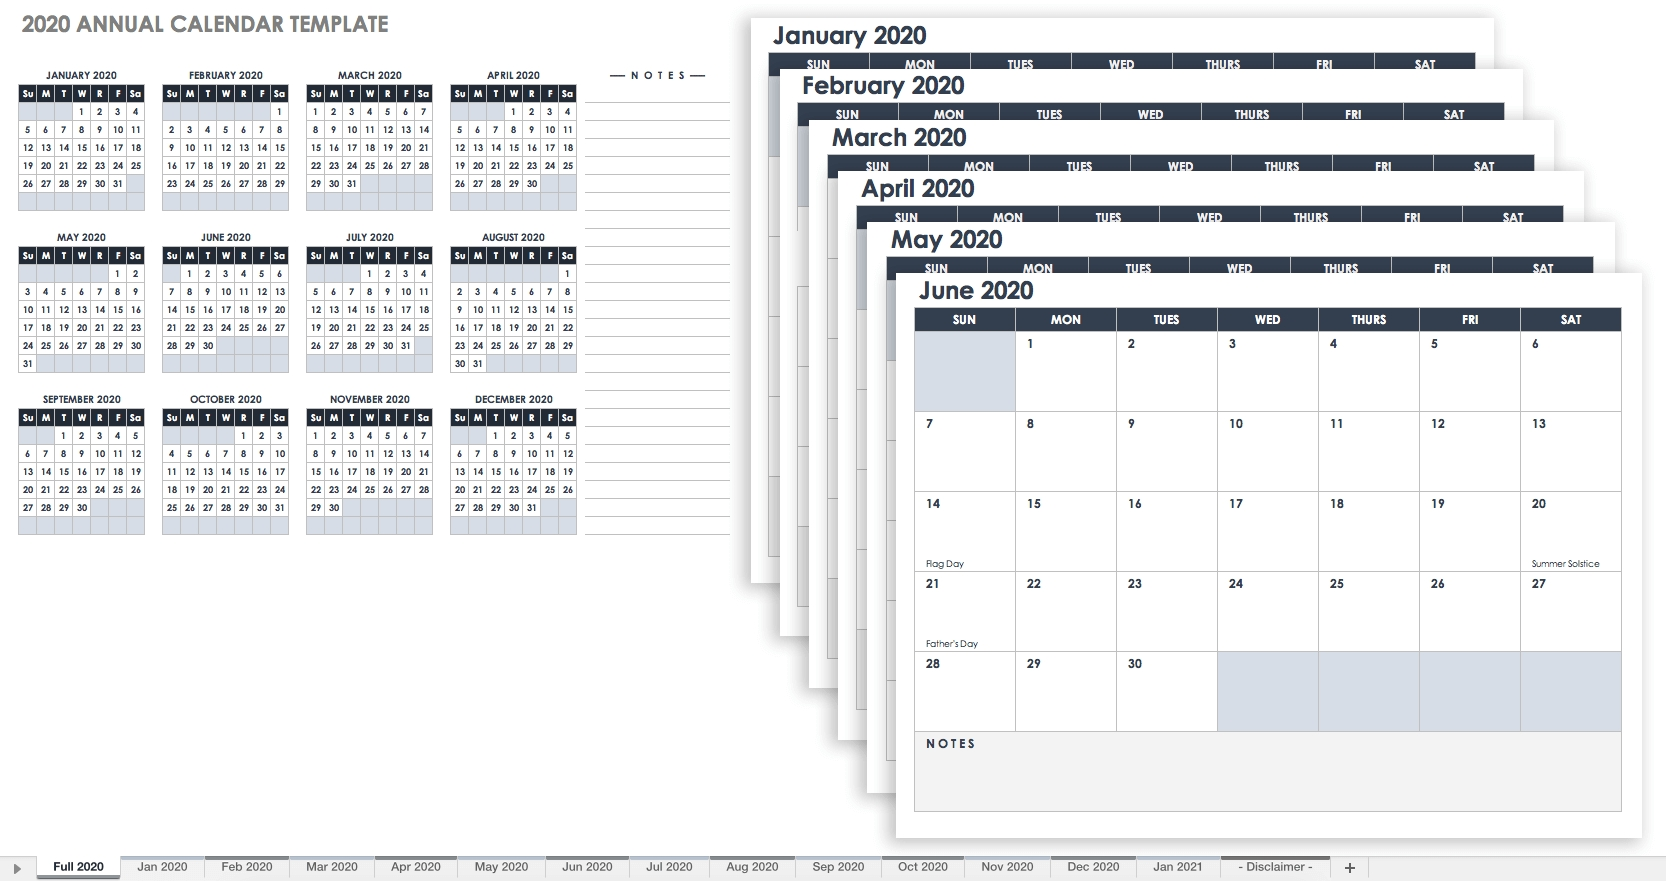 Free Blank Calendar Templates - Smartsheet for Free Calendars To Print Without Downloading